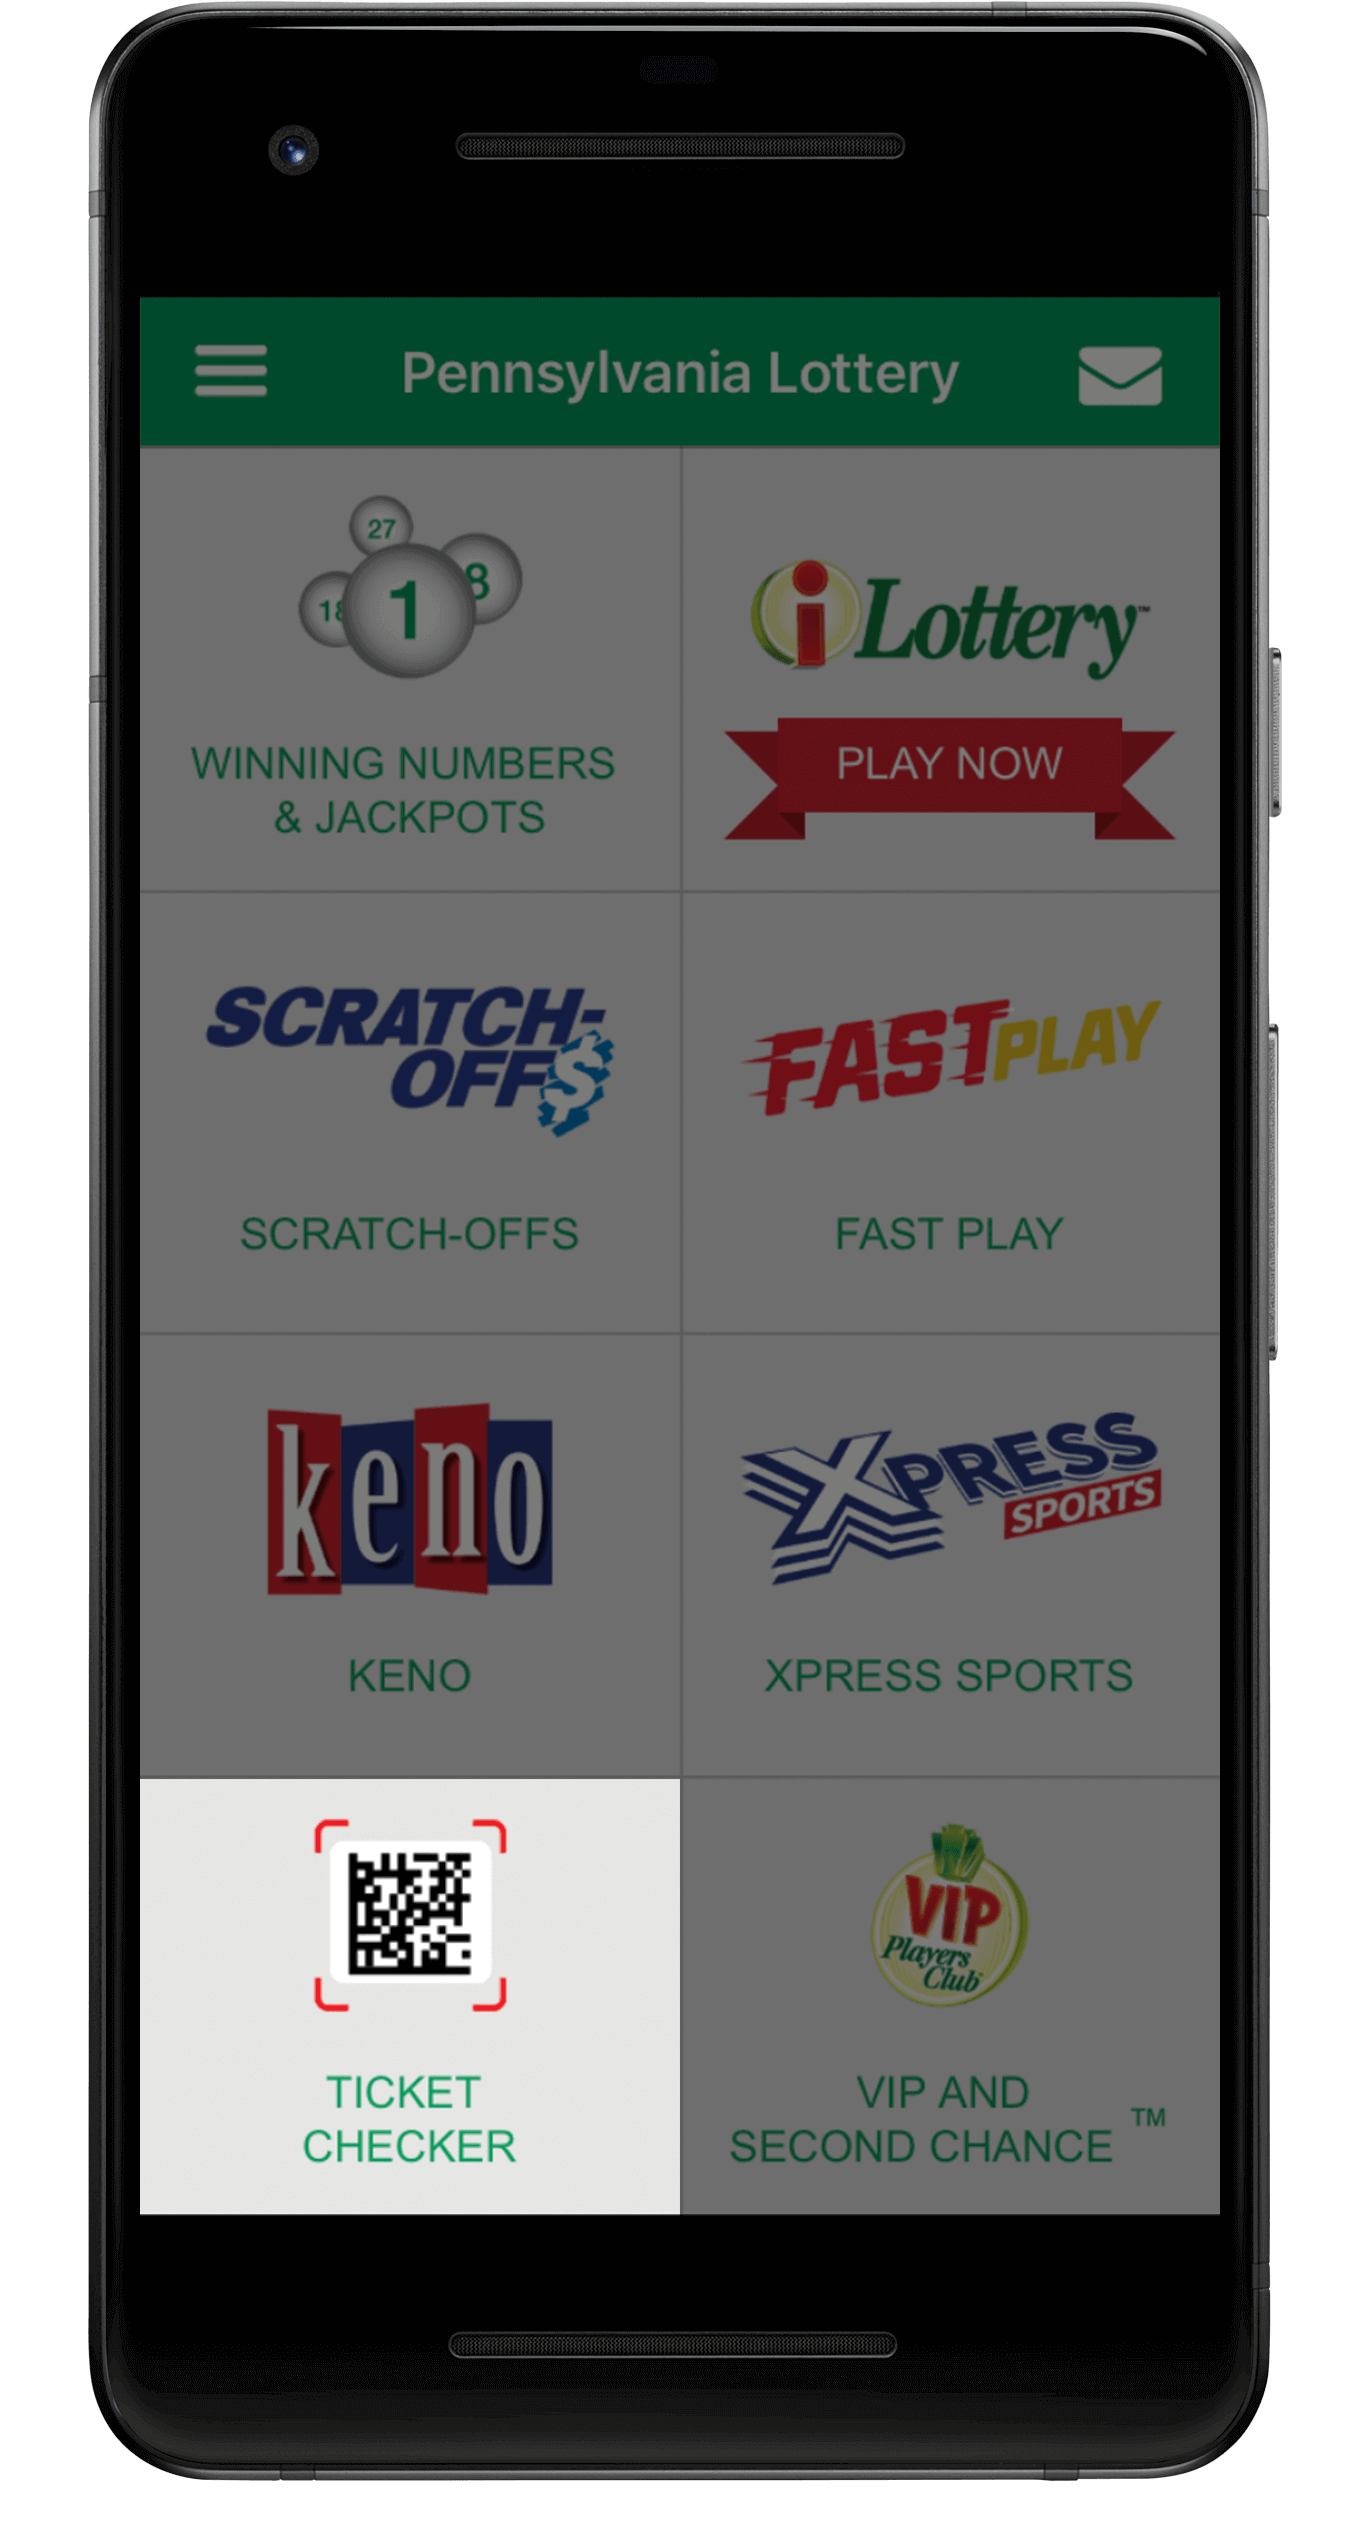 Pennsylvania Lottery - PA Lottery Official Mobile App FAQ